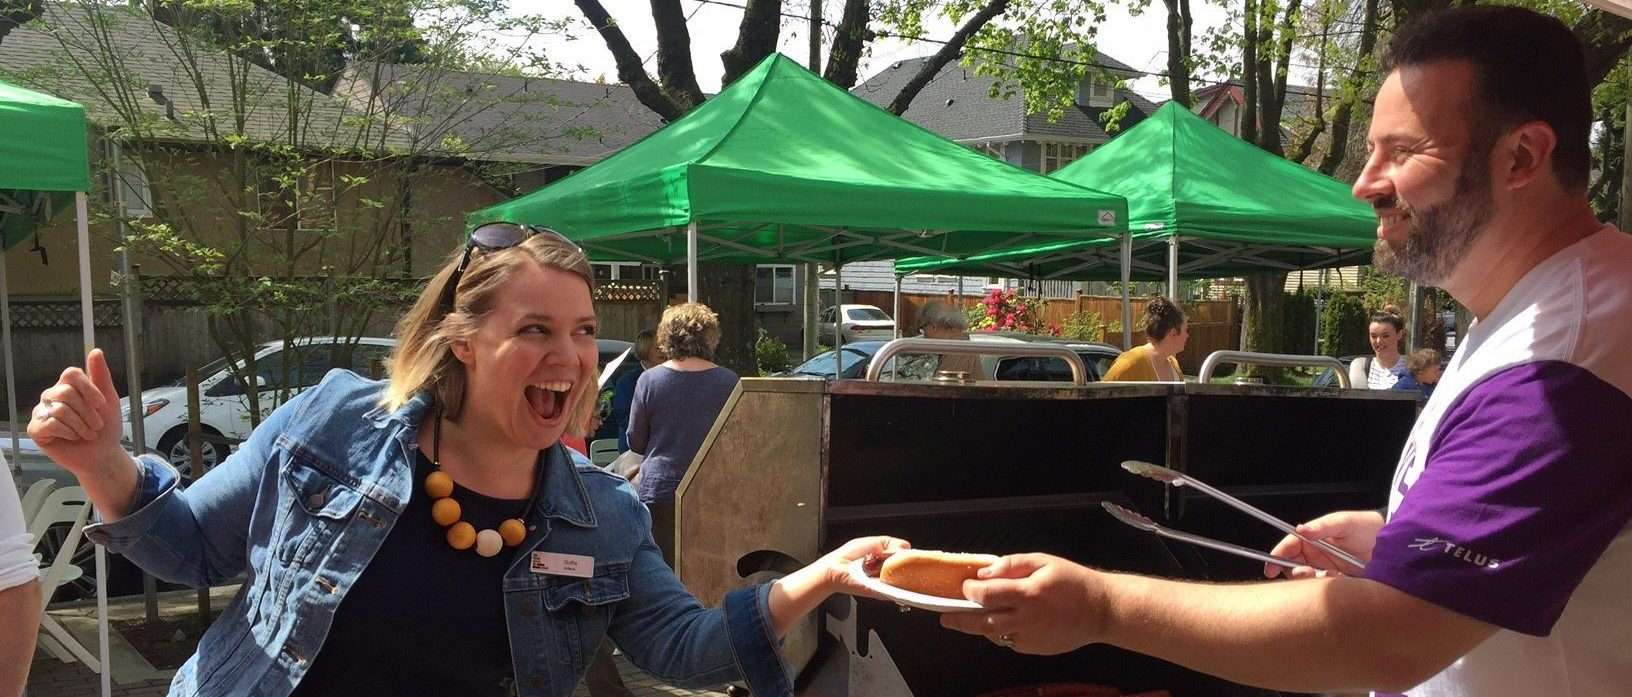 Over acting hot dog pass off